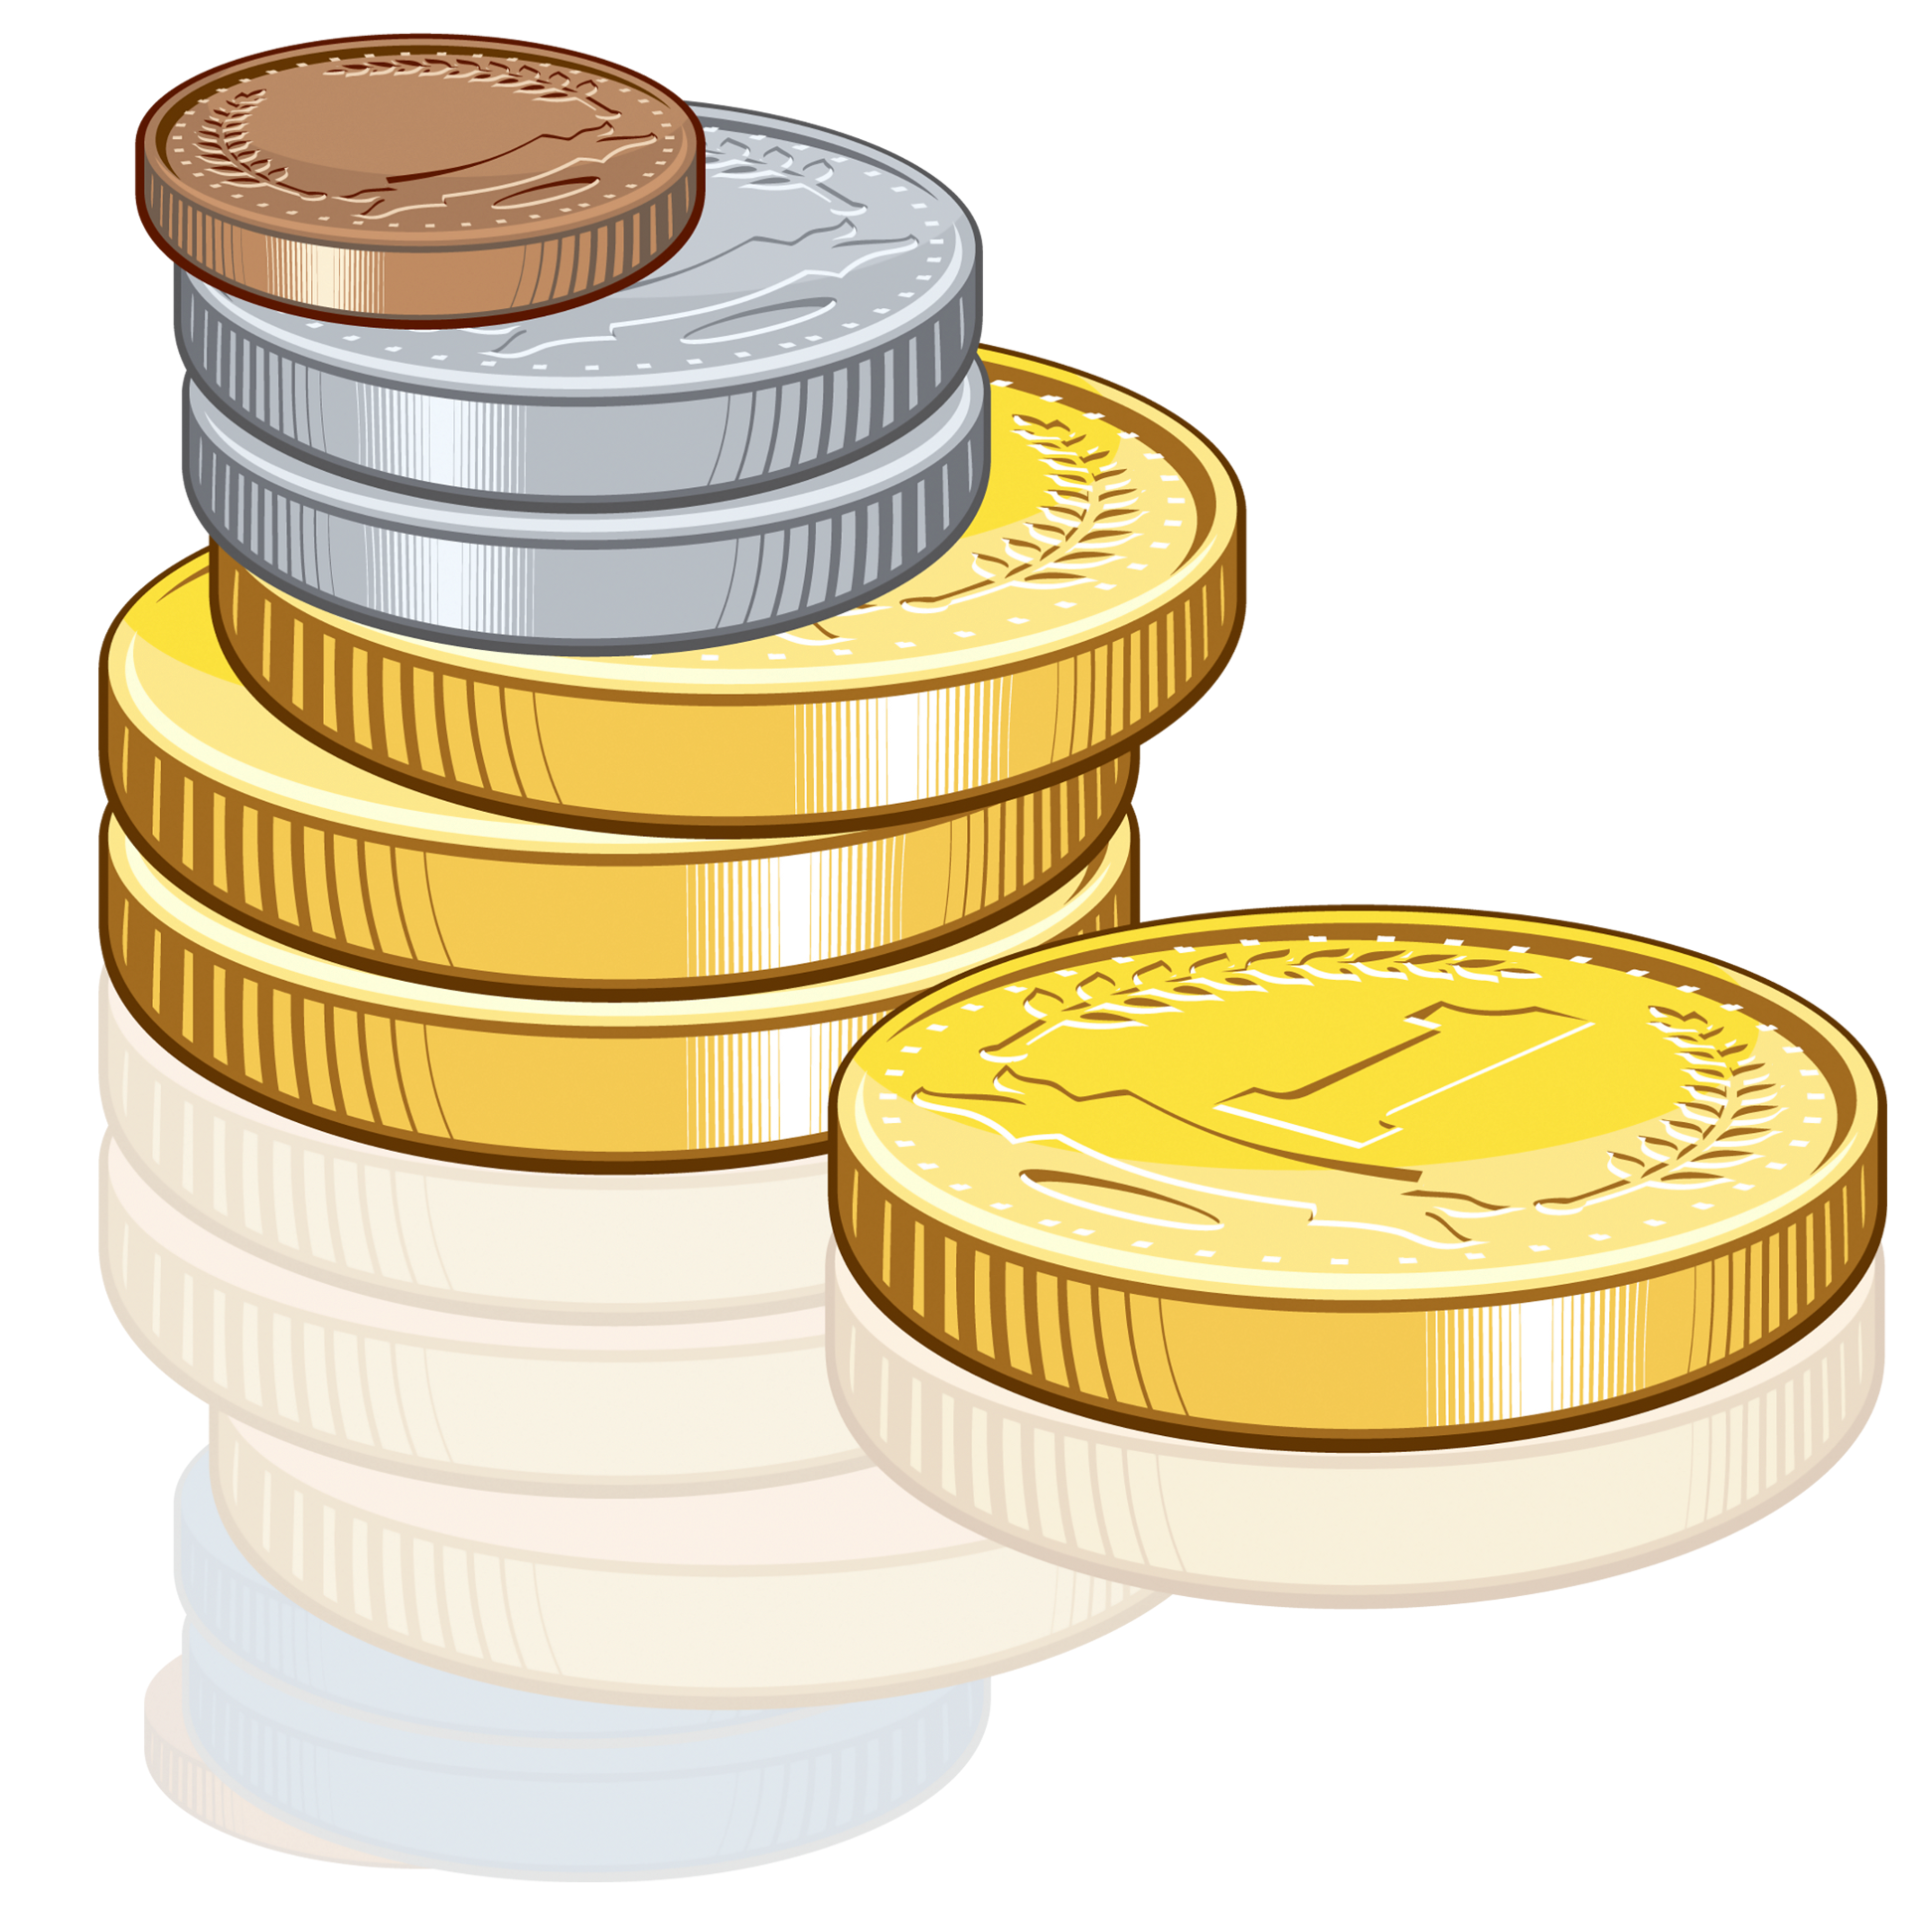 Coin clipart note.  collection of money